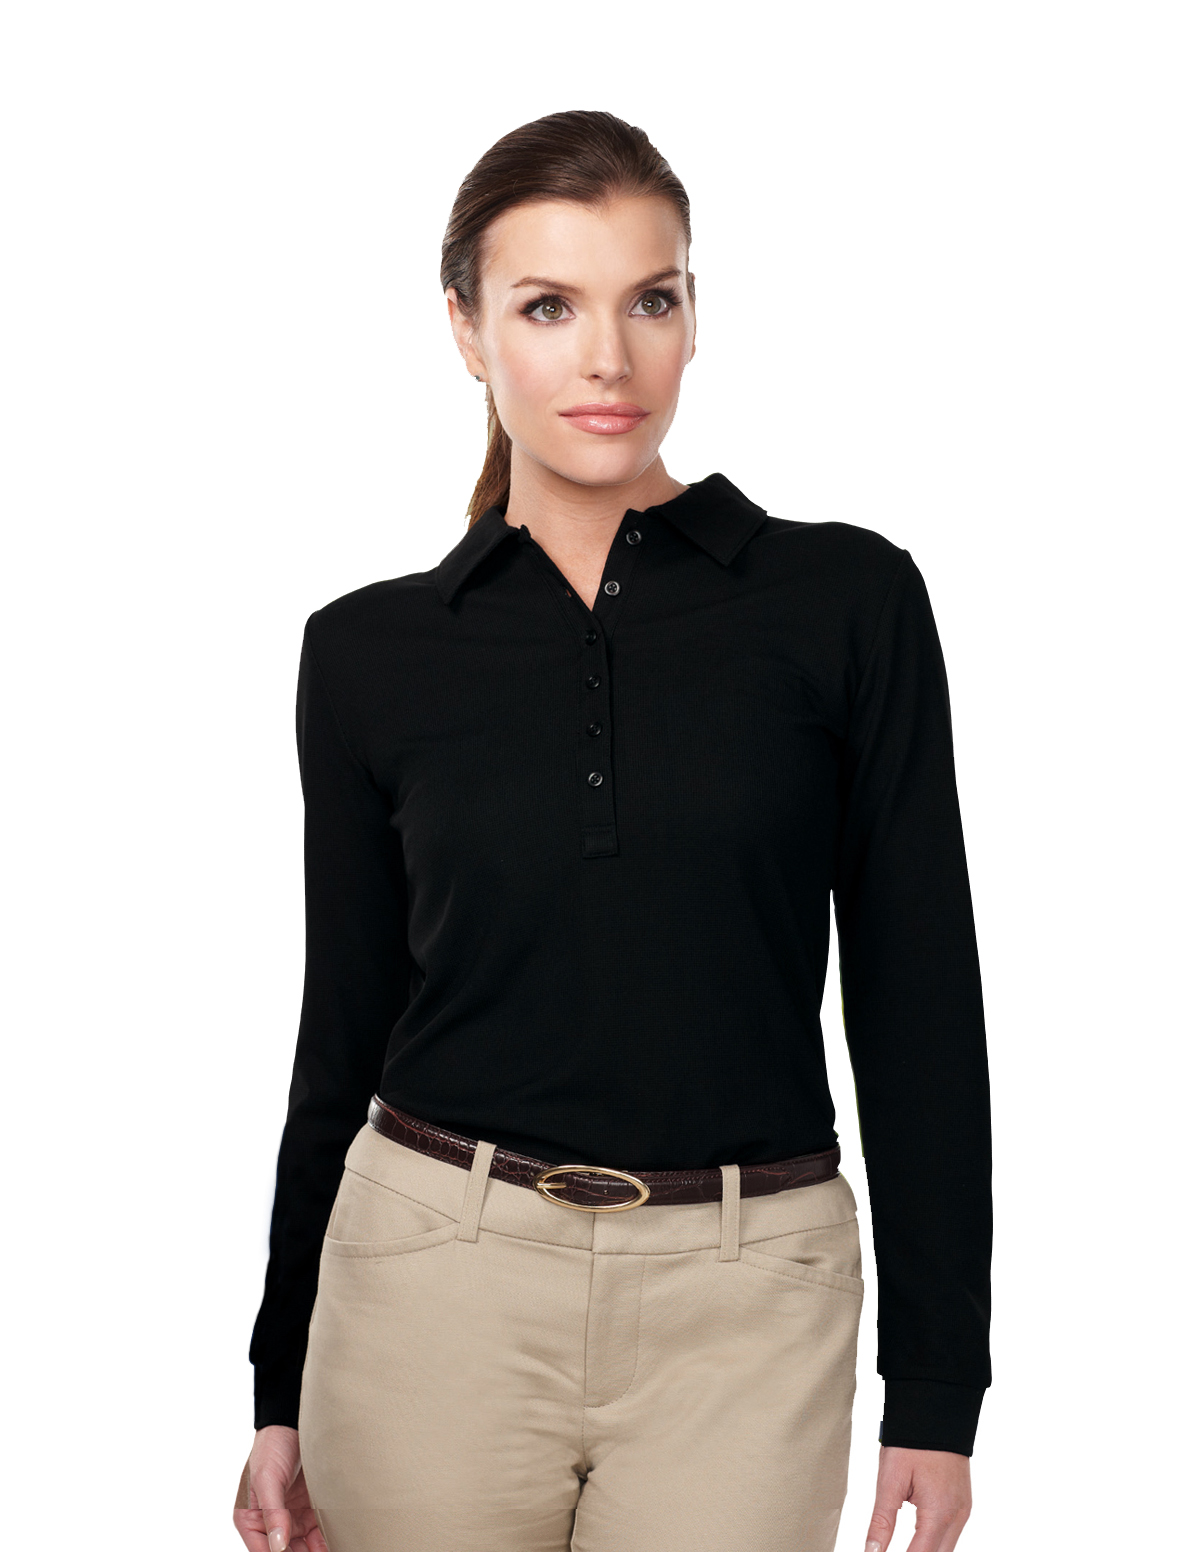 453b34ed707ef1 Ladies Formal Shirts Buy Online - Cotswold Hire